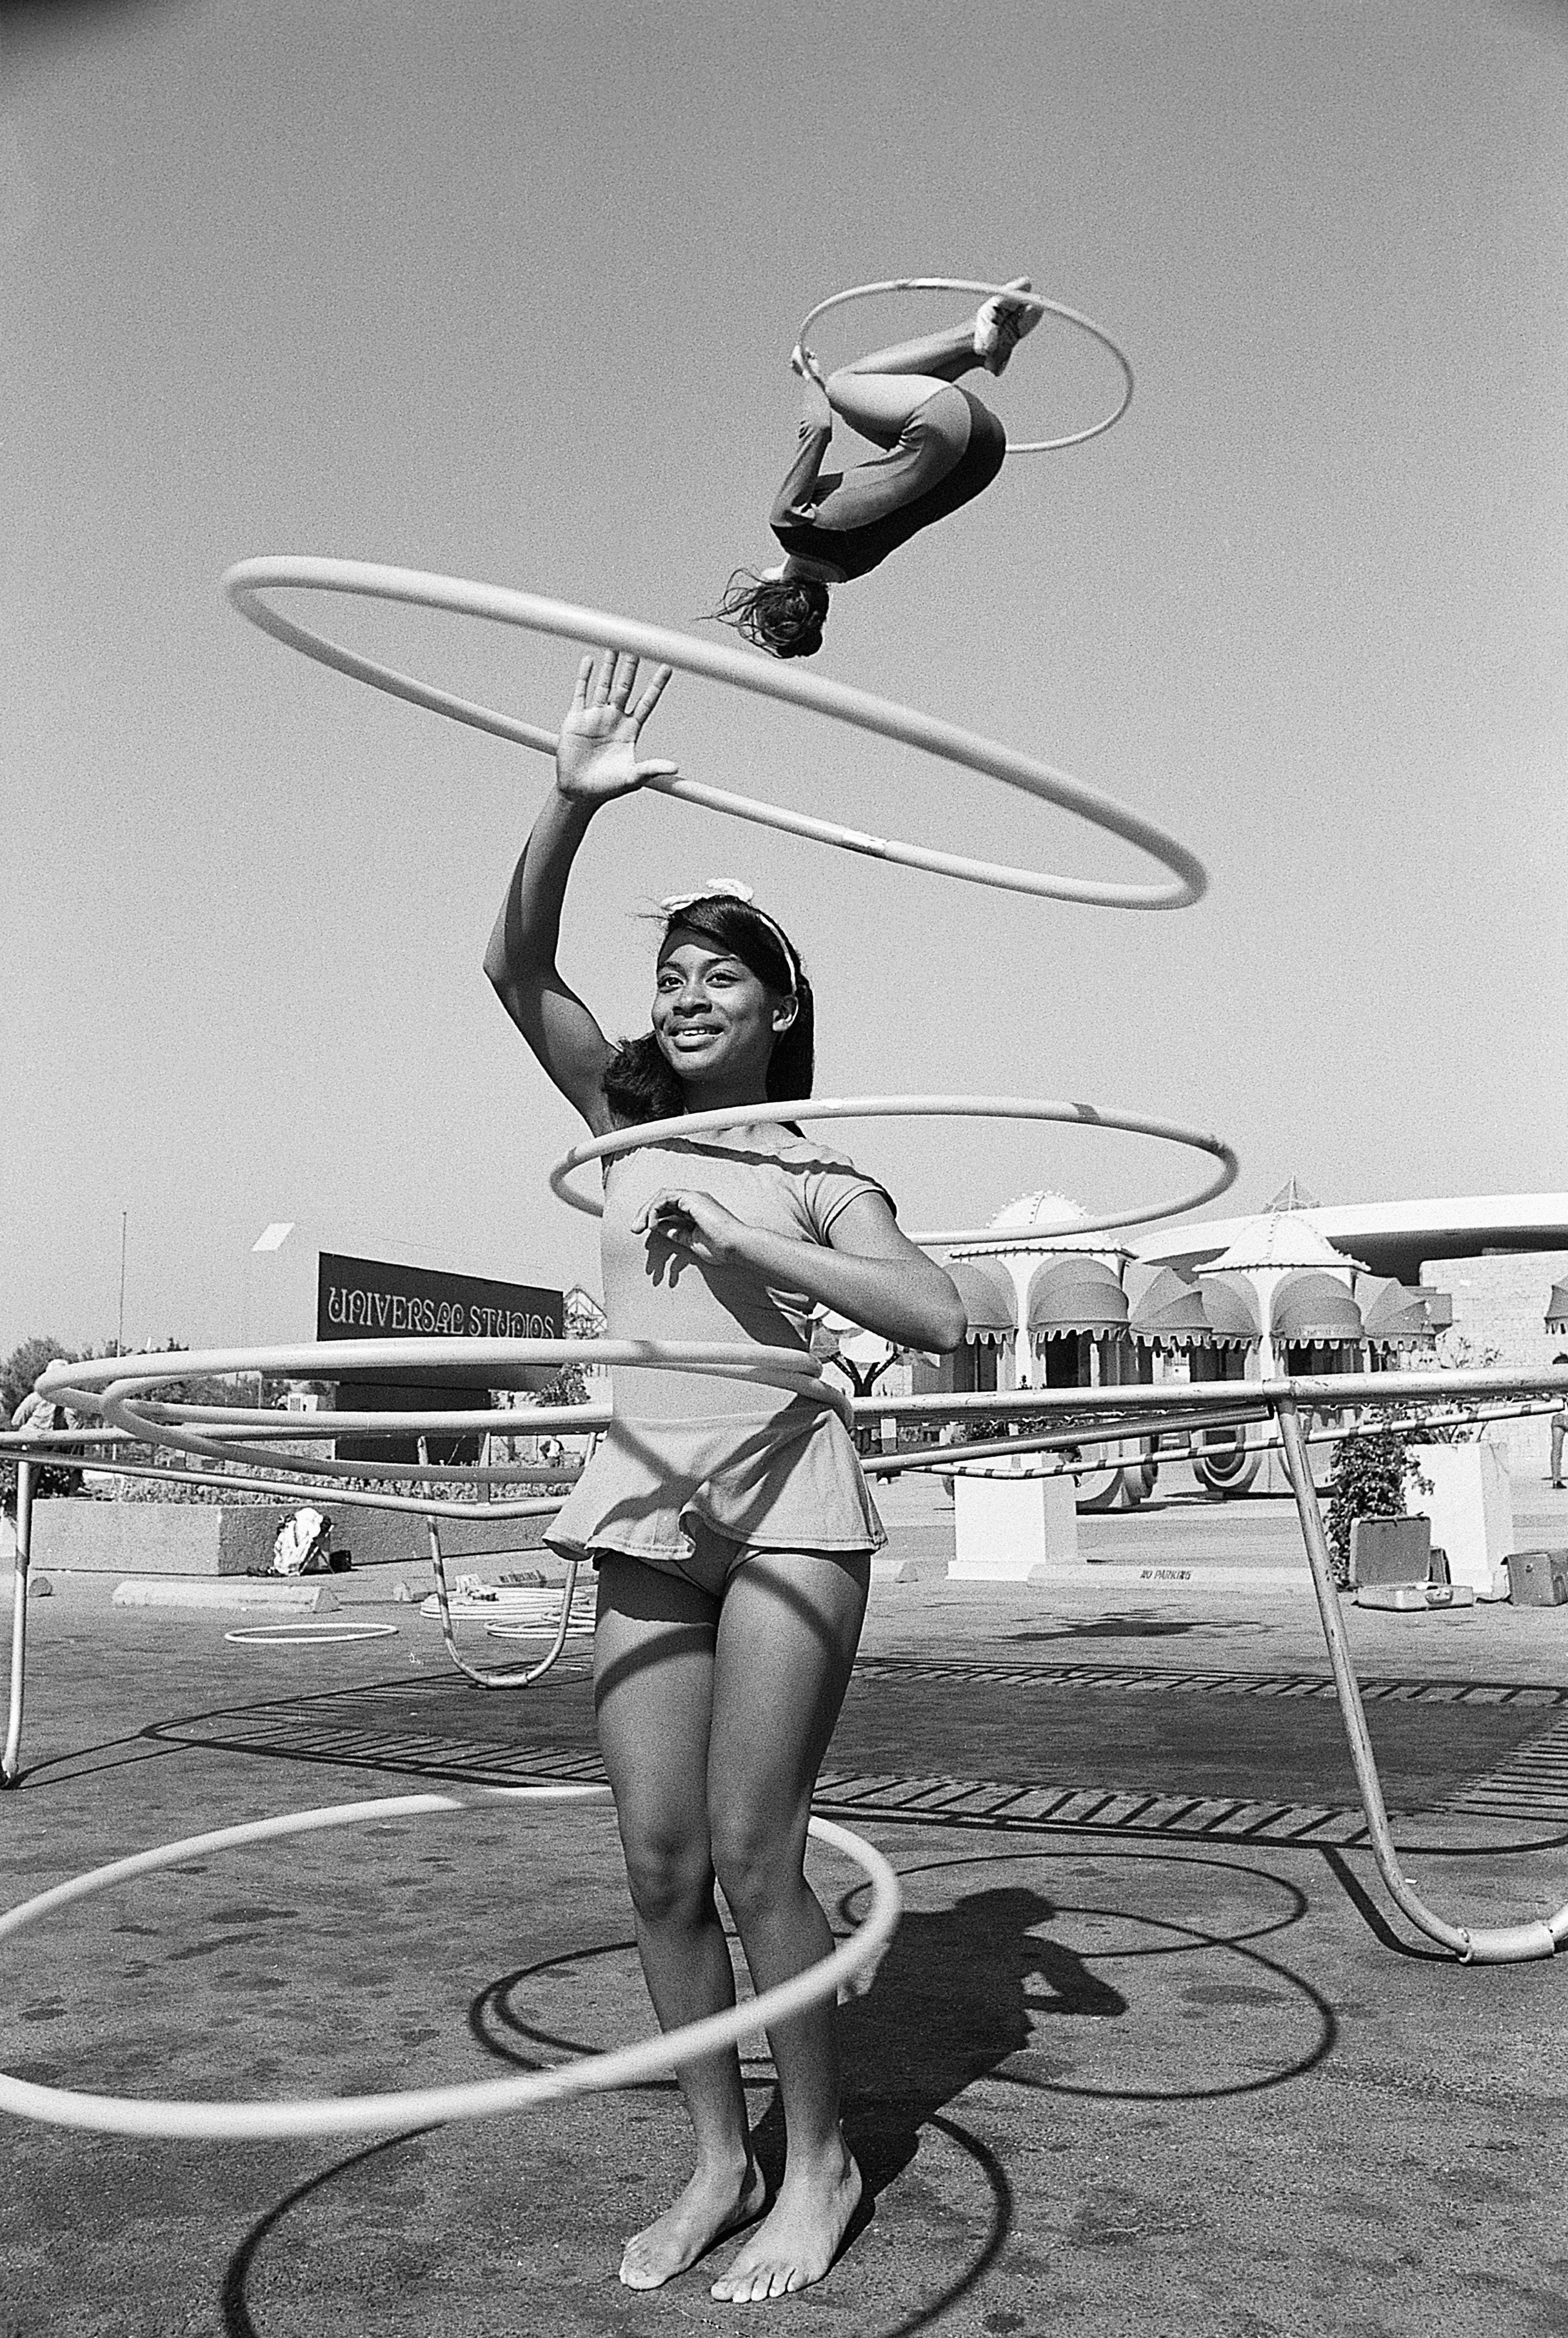 National hula hoop champion Sandra Gaylord spins her hoops in 1972, as world professional trampoline champion Judy Johnson do